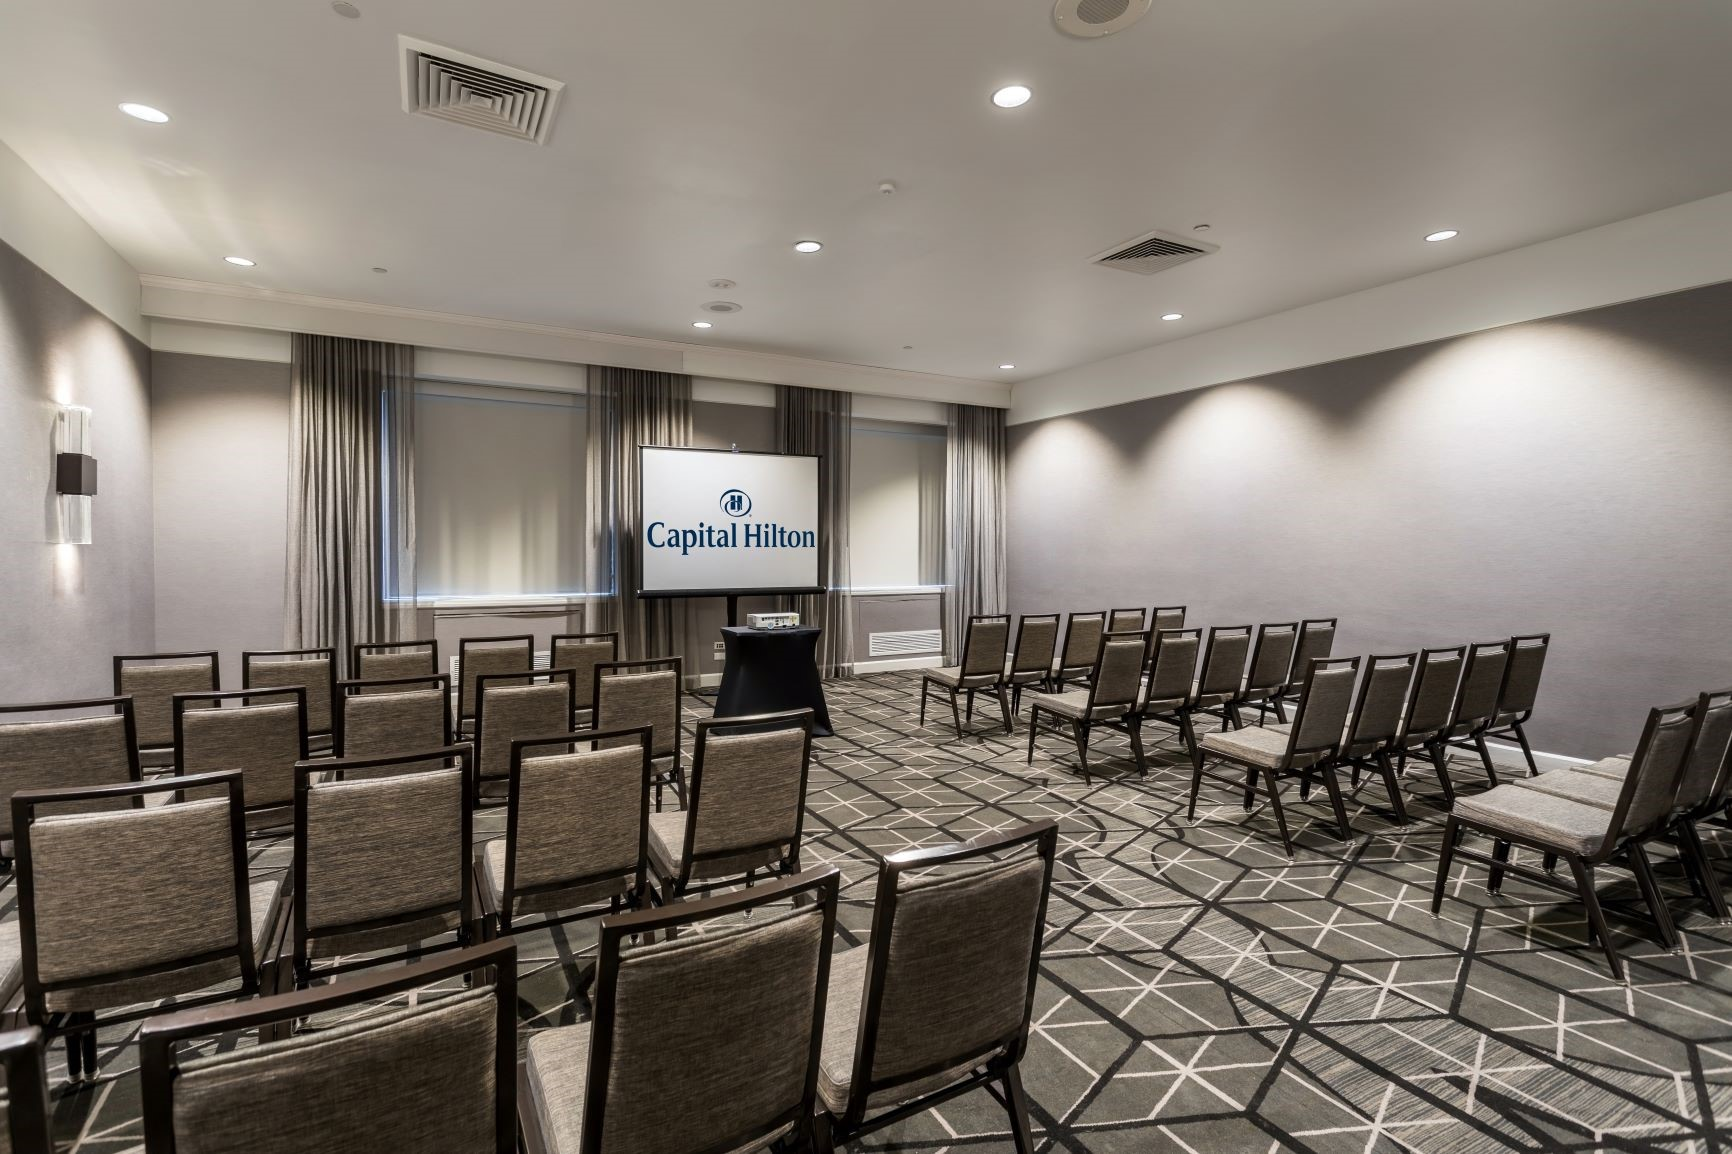 Capital Hilton's second floor meeting room